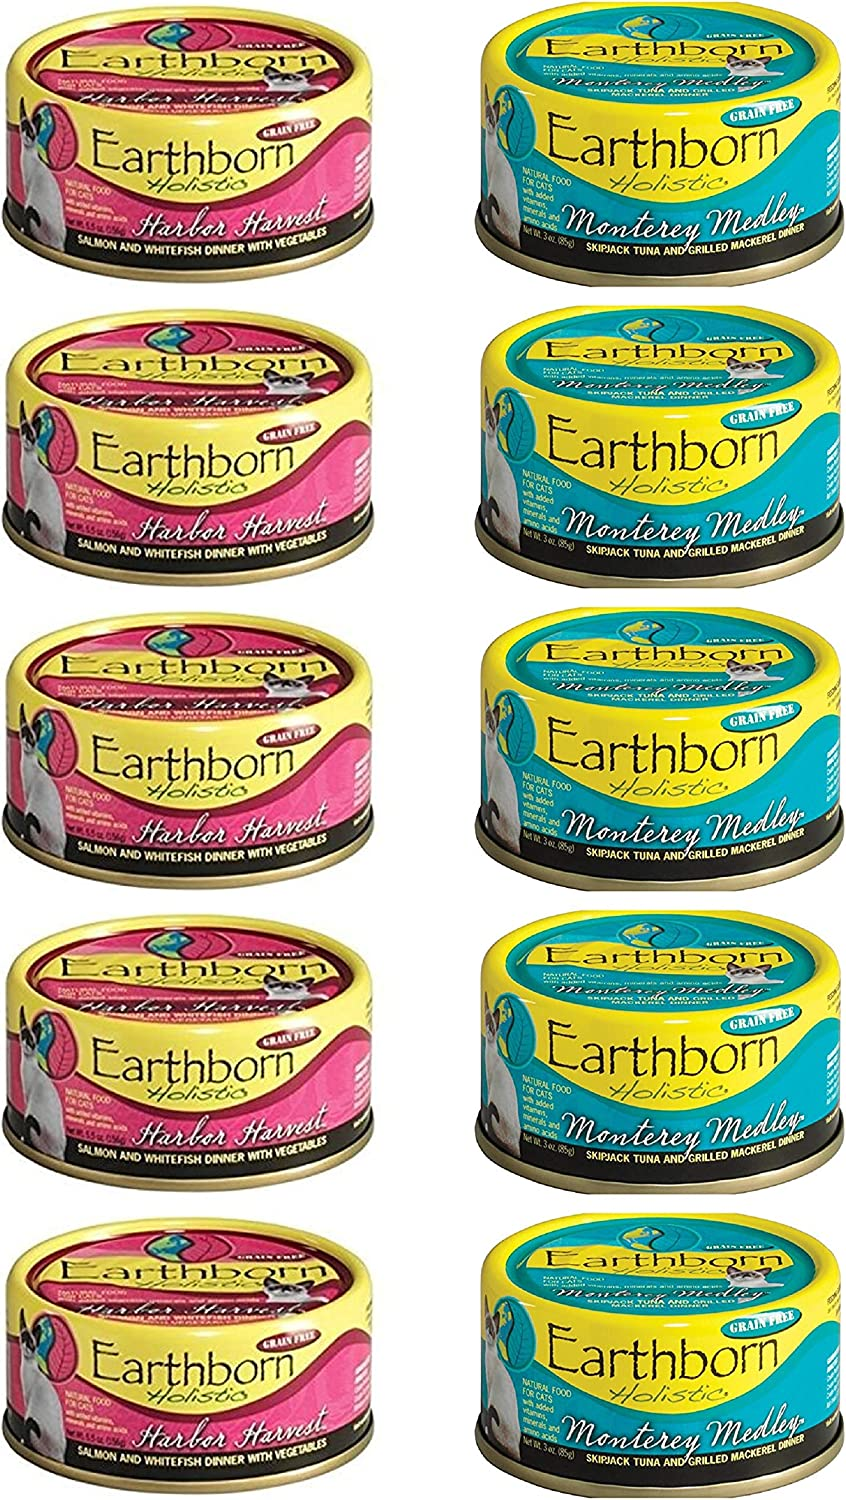 Earthborn Holistic Grain Free Cat Food in 2 Flavors: (5) Harbor Harvest and (5) Monterey Medley (10 Cans Total, 3 Ounces Each)